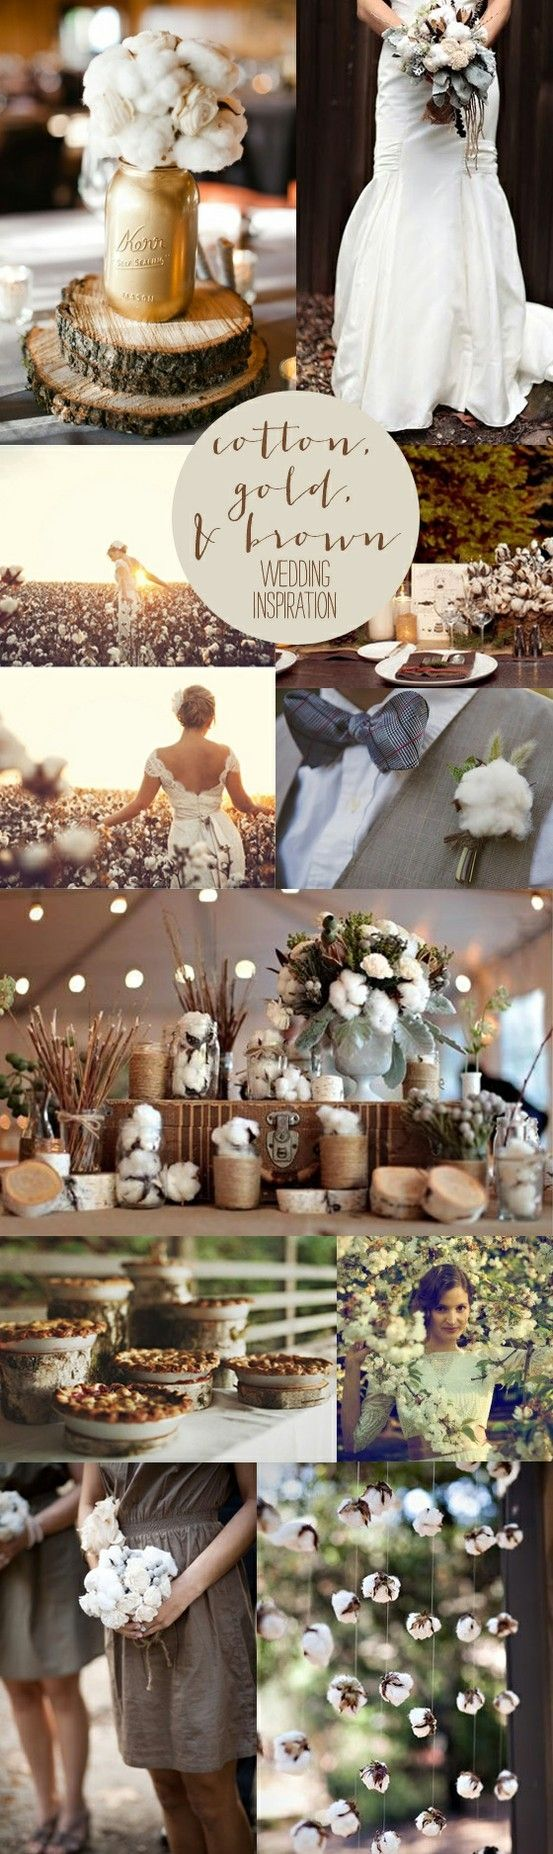 Cotton, gold, and brown wedding inspiration. Re-pin if you like. Via Ellesilk.com #wedding